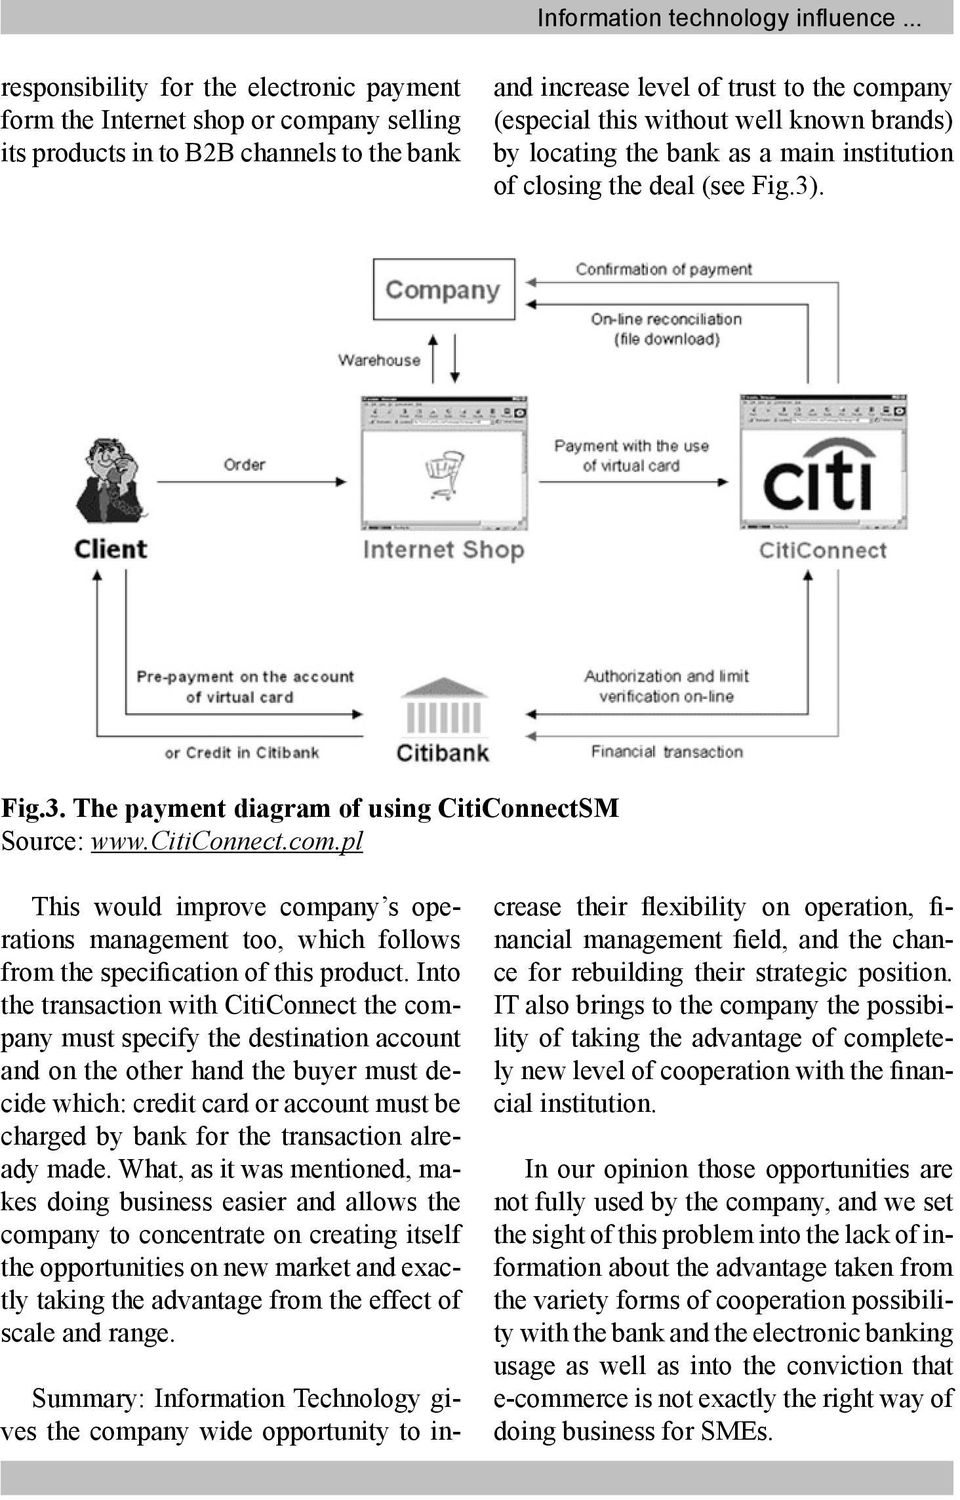 well known brands) by locating the bank as a main institution of closing the deal (see Fig.3). Fig.3. The payment diagram of using CitiConnectSM Source: www.citiconnect.com.